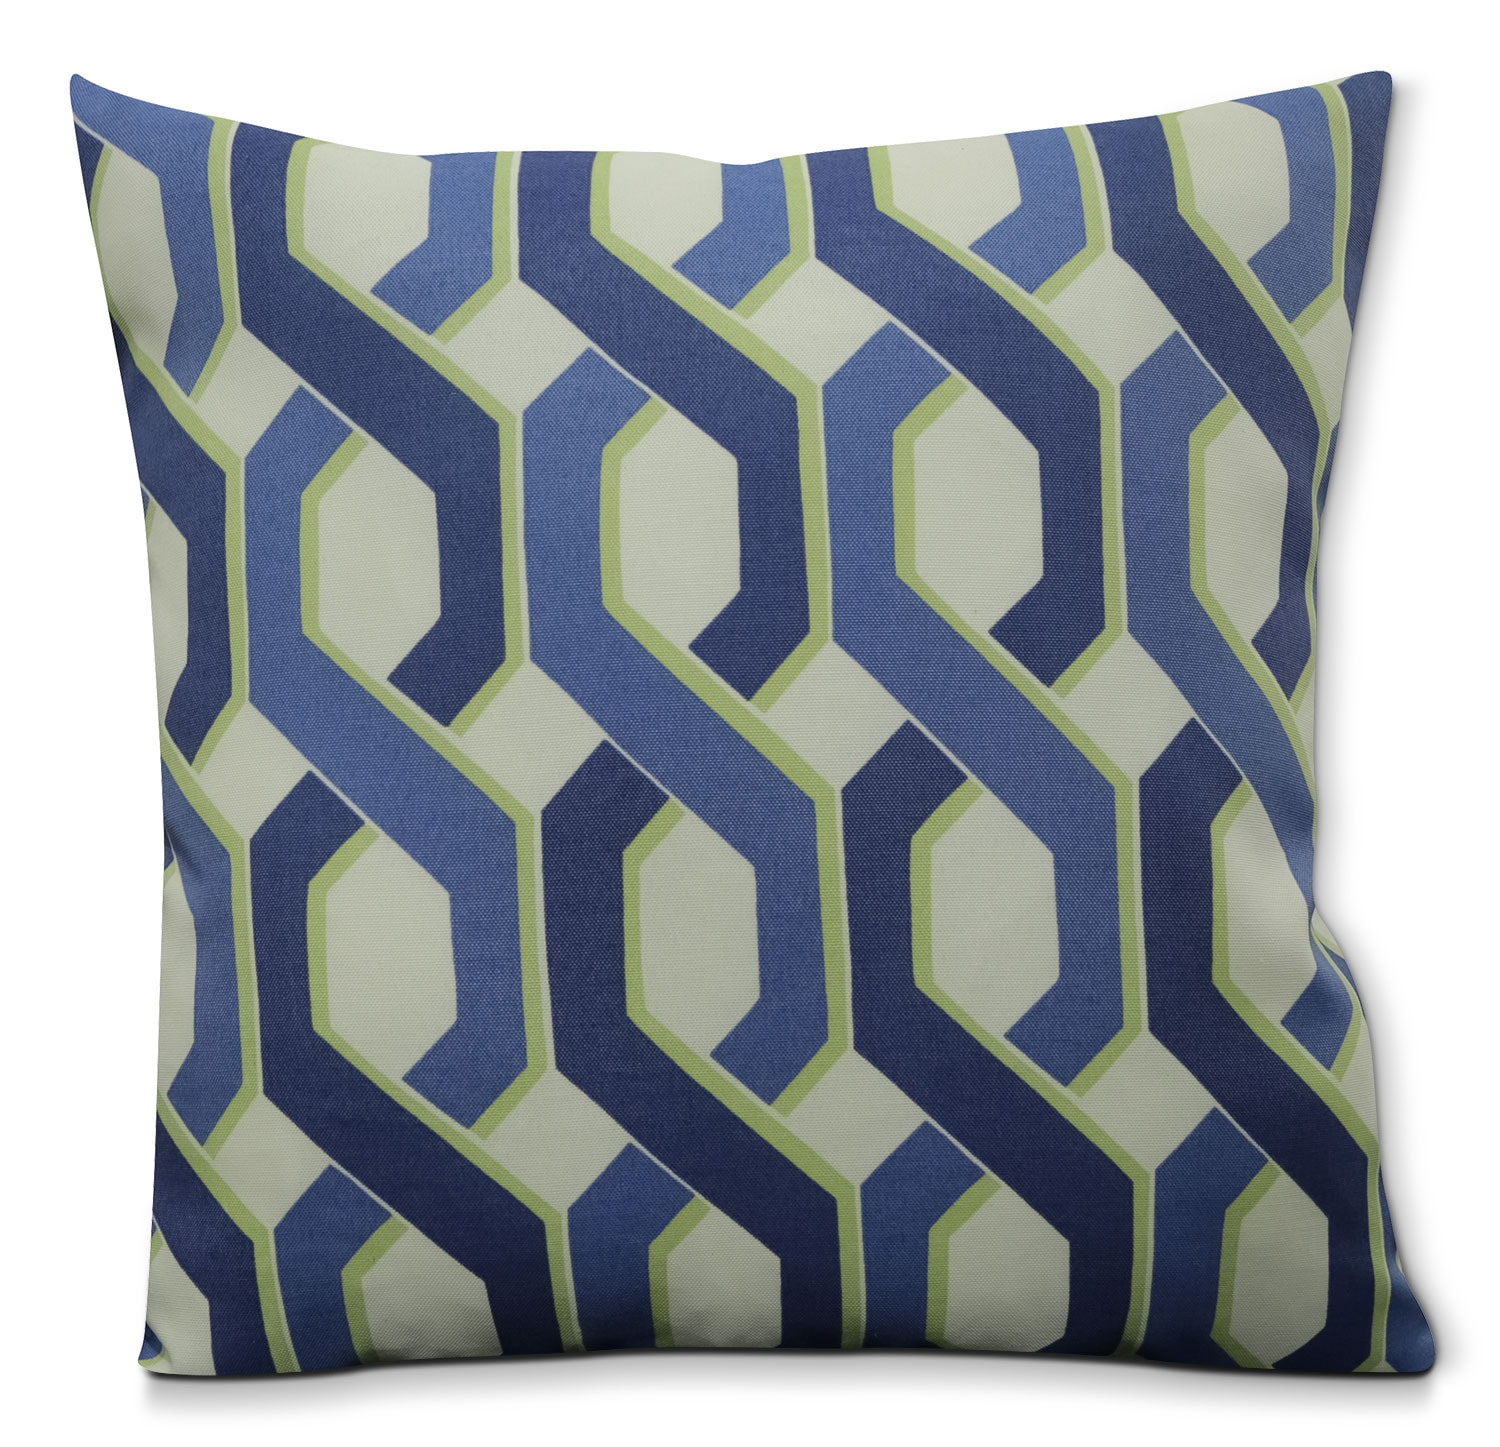 Geolink Outdoor Accent Pillow